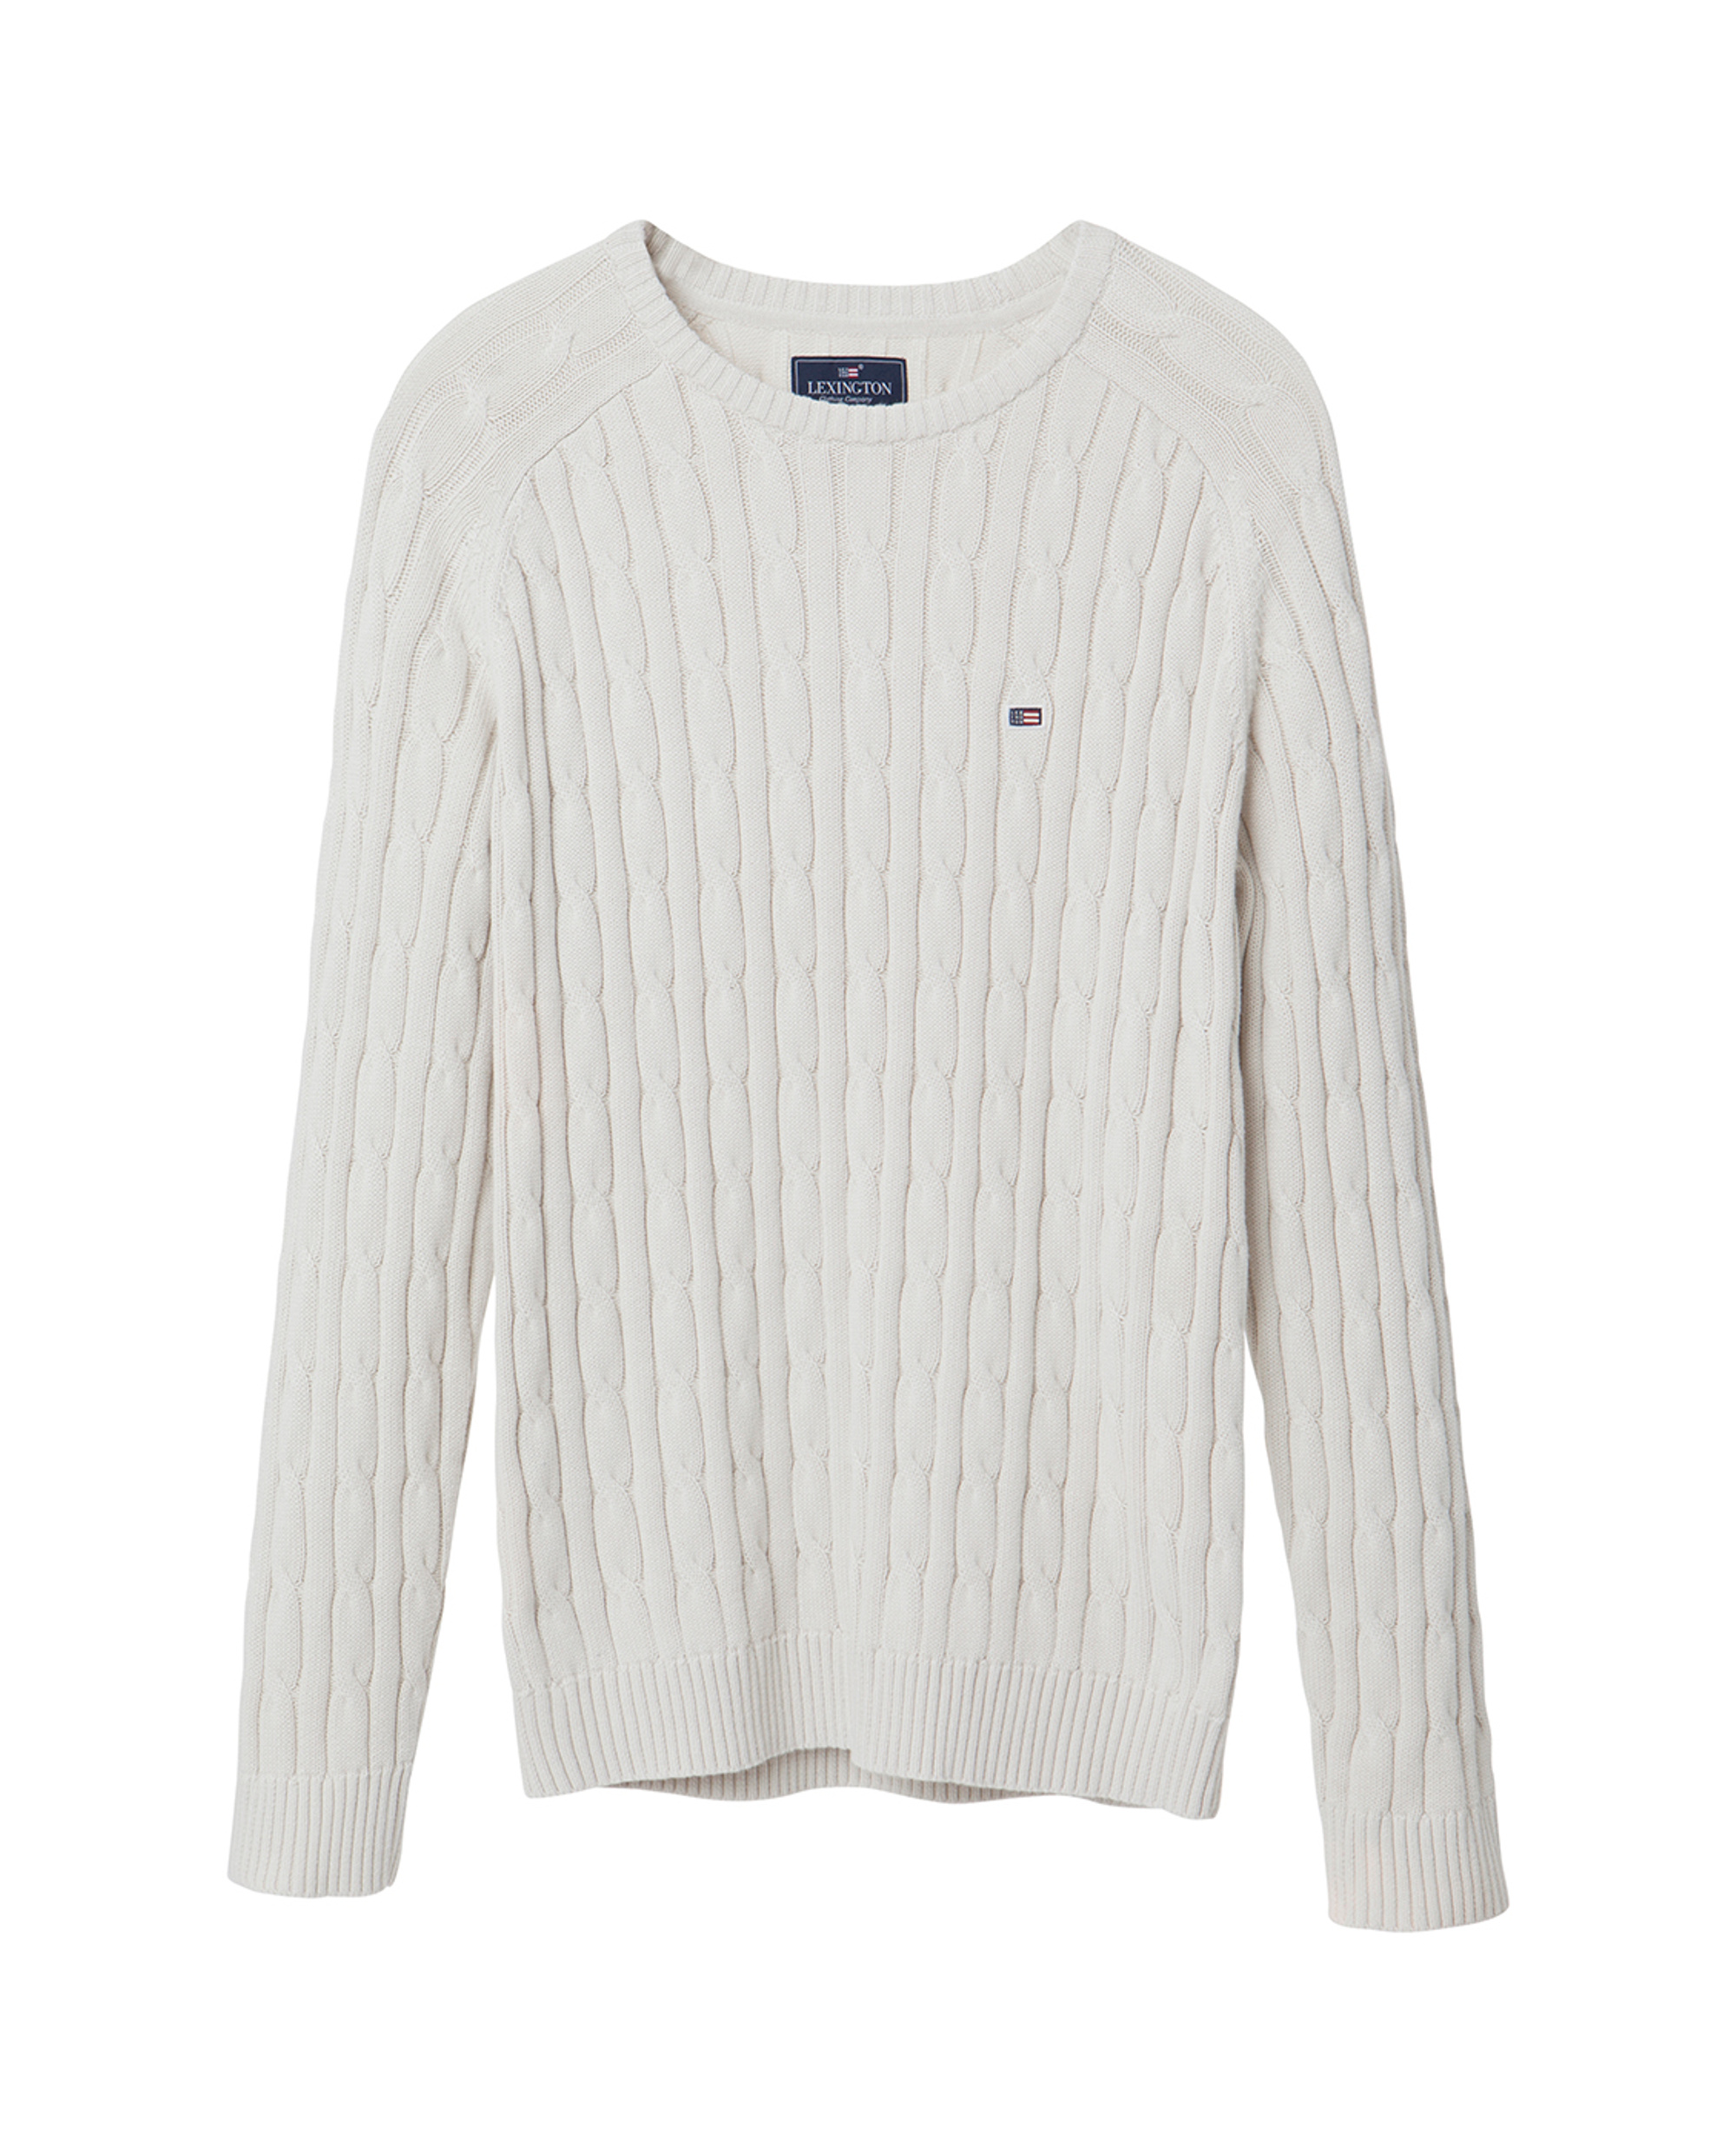 Andrew Cotton Cable Sweater, Ivory